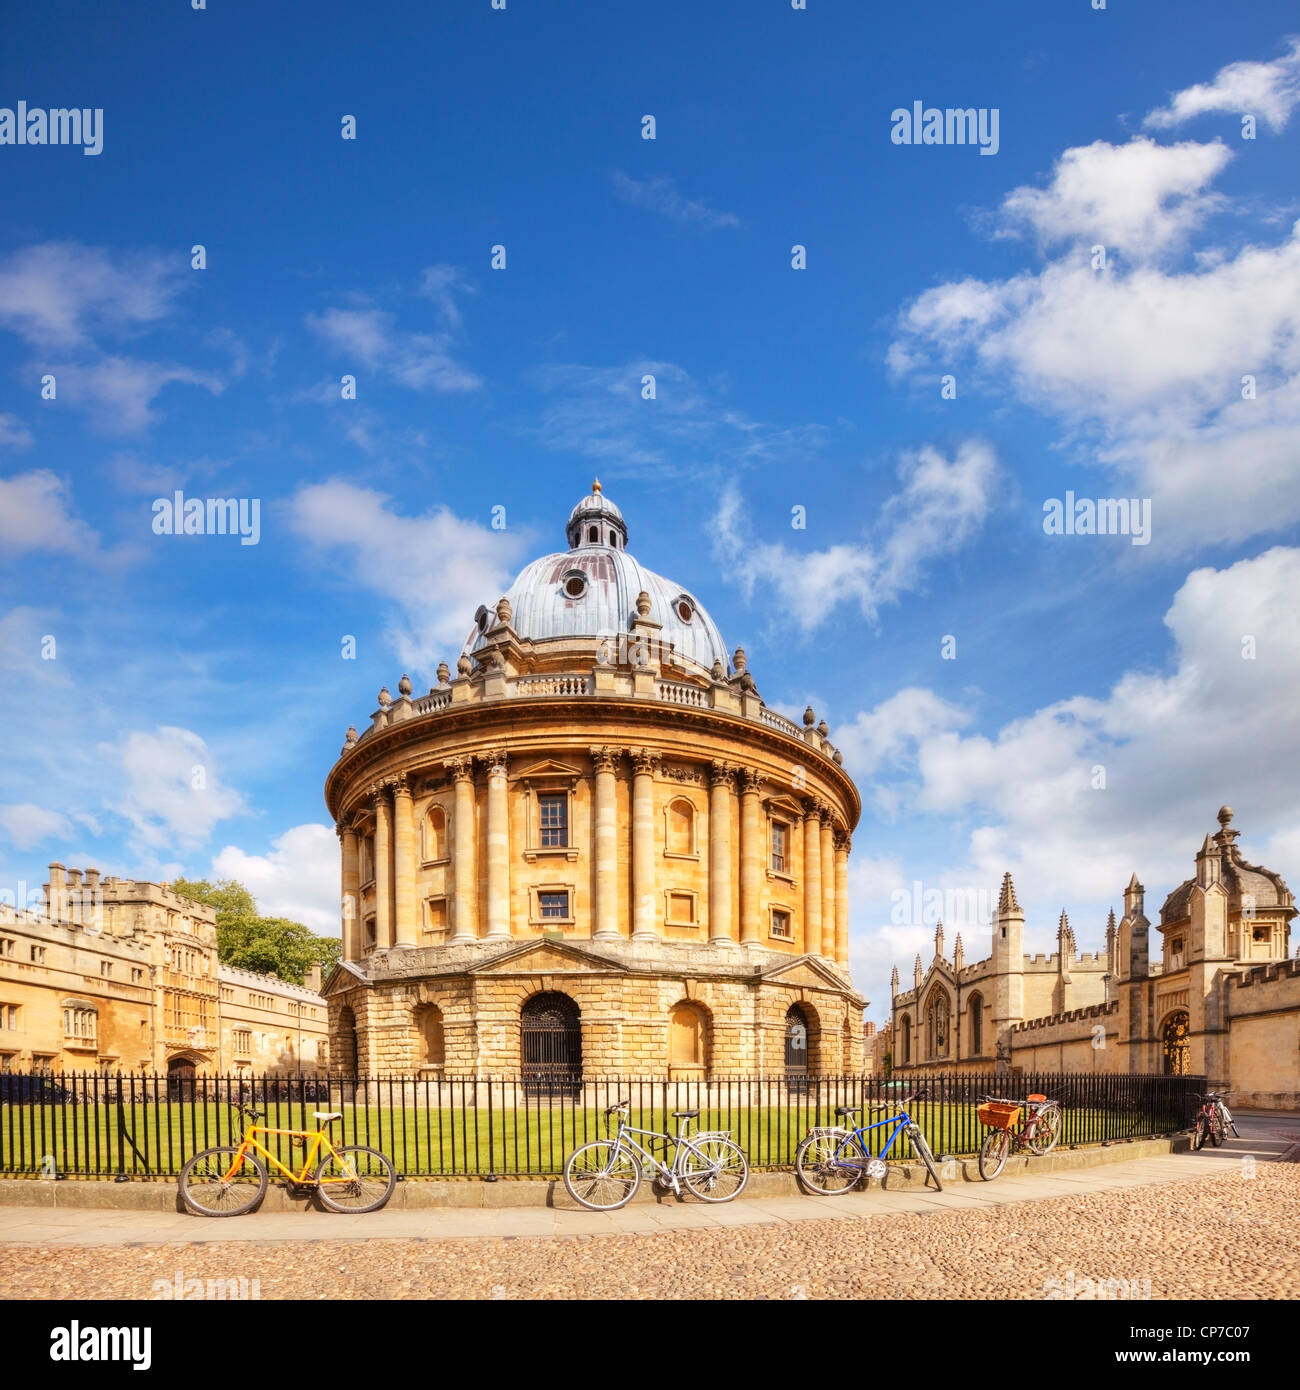 The Radcliffe Camera was built, in the Palladian Style, between 1737 and 1749 to house the Radcliffe Science Library - Stock Image